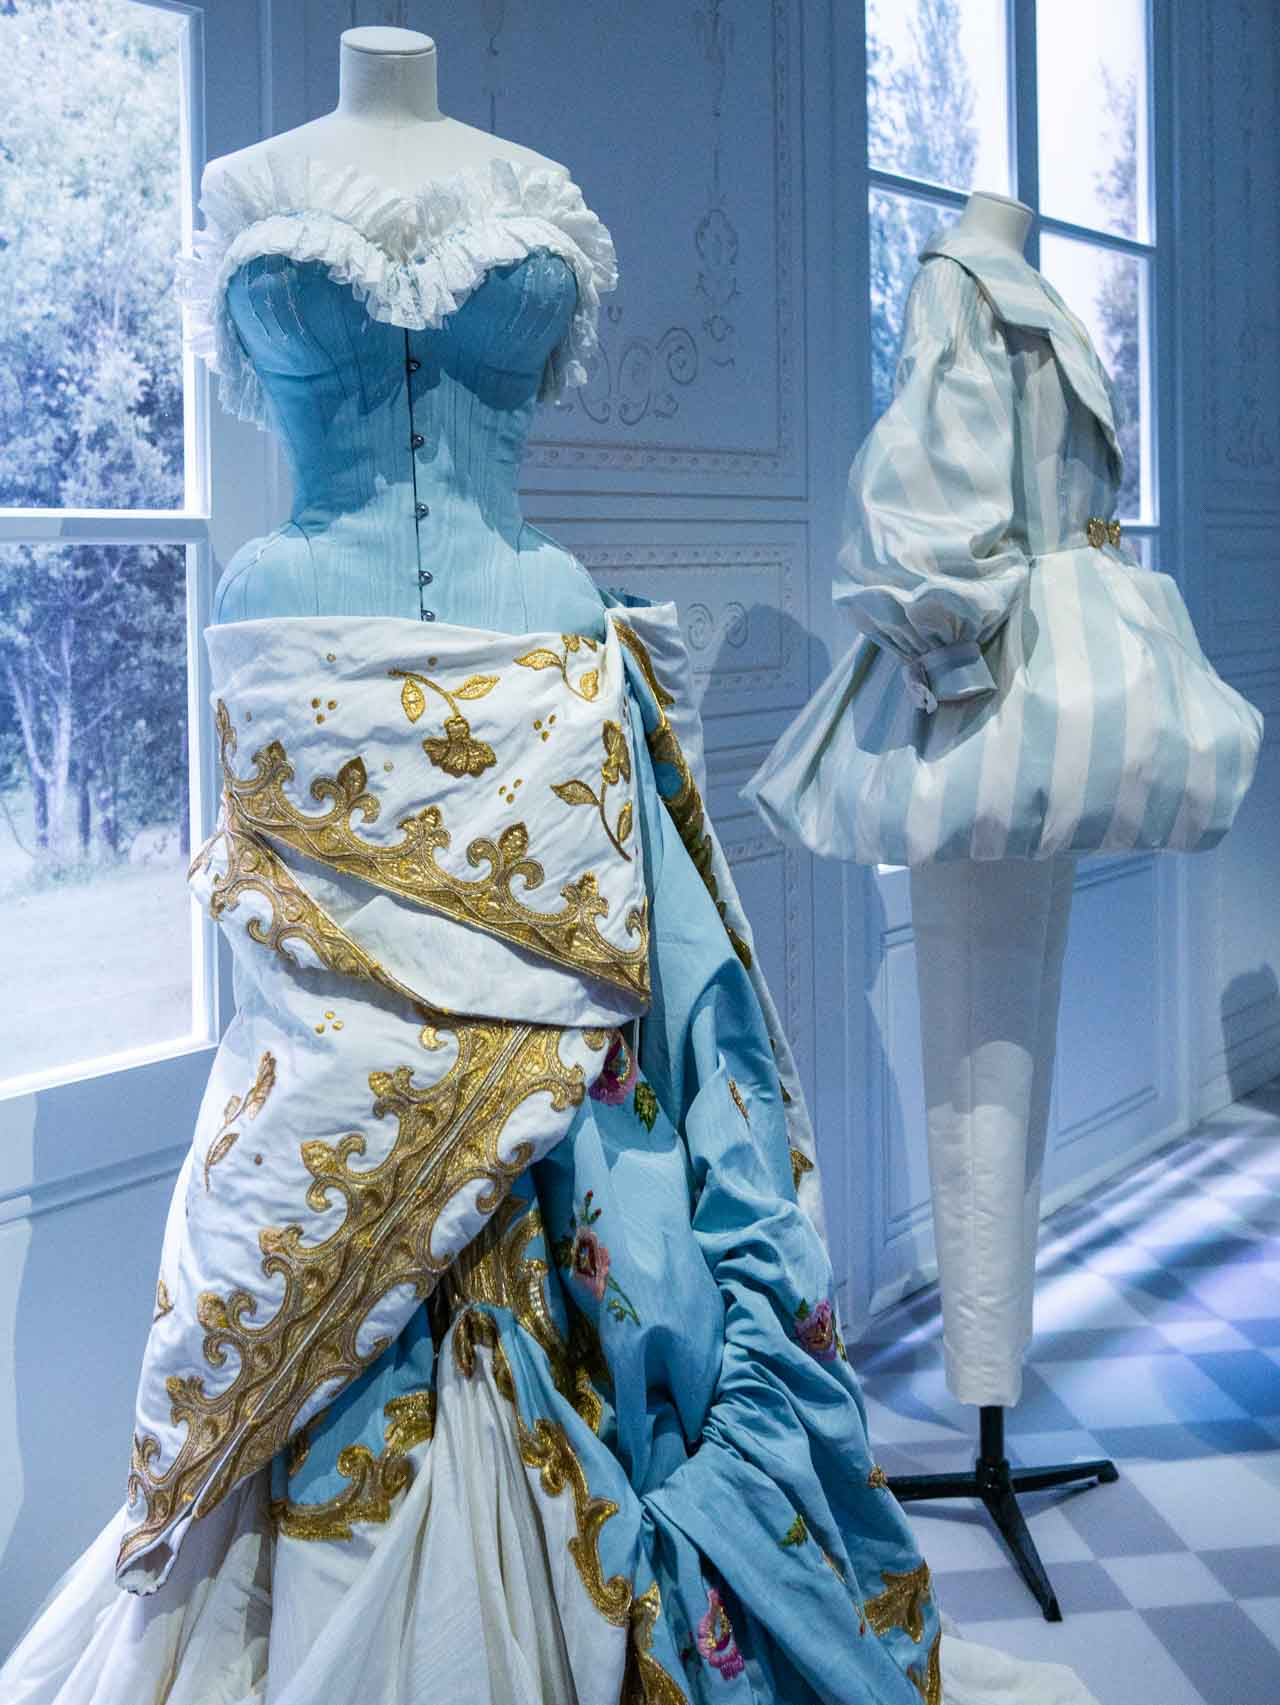 Blue, white and gold dress with historical and modern references. Christian Dior by John Galliano, Haute Couture, Autumn-Winter 2004. Taken at the V&A exhibition © The Cutting Class, 2019.